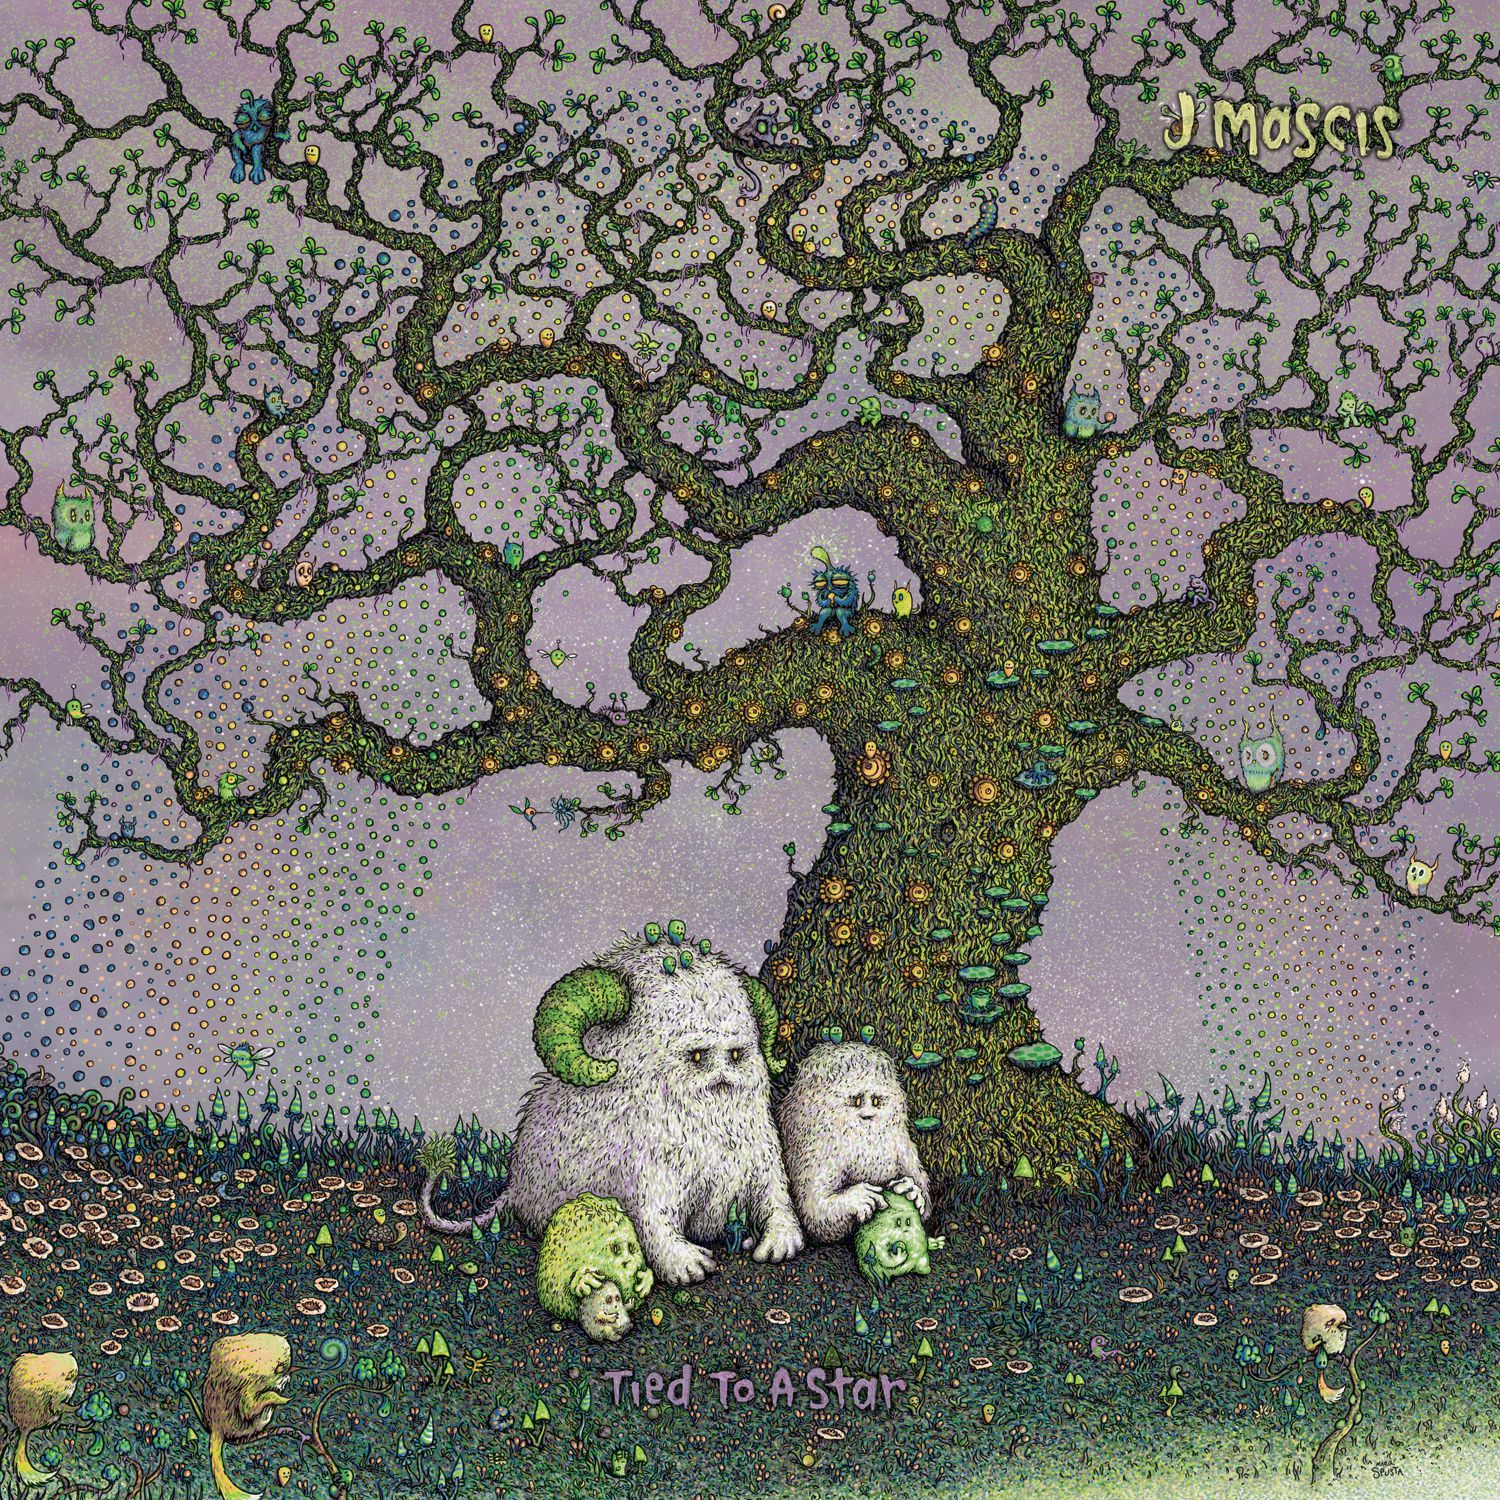 J MASCIS - Tied to a star (2014)